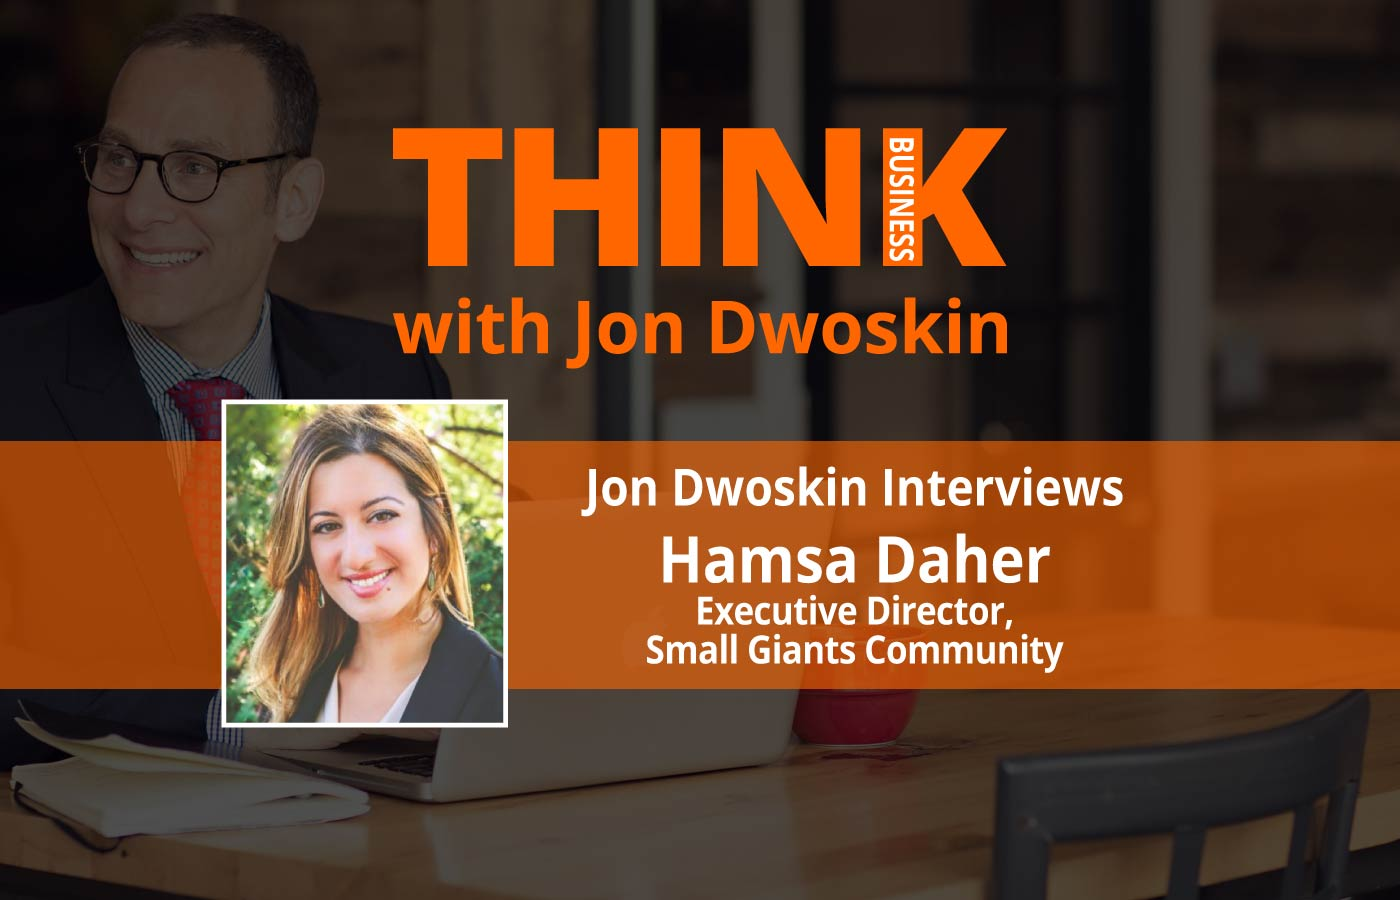 THINK Business: Jon Dwoskin Interviews Hamsa Daher, Executive Director, Small Giants Community